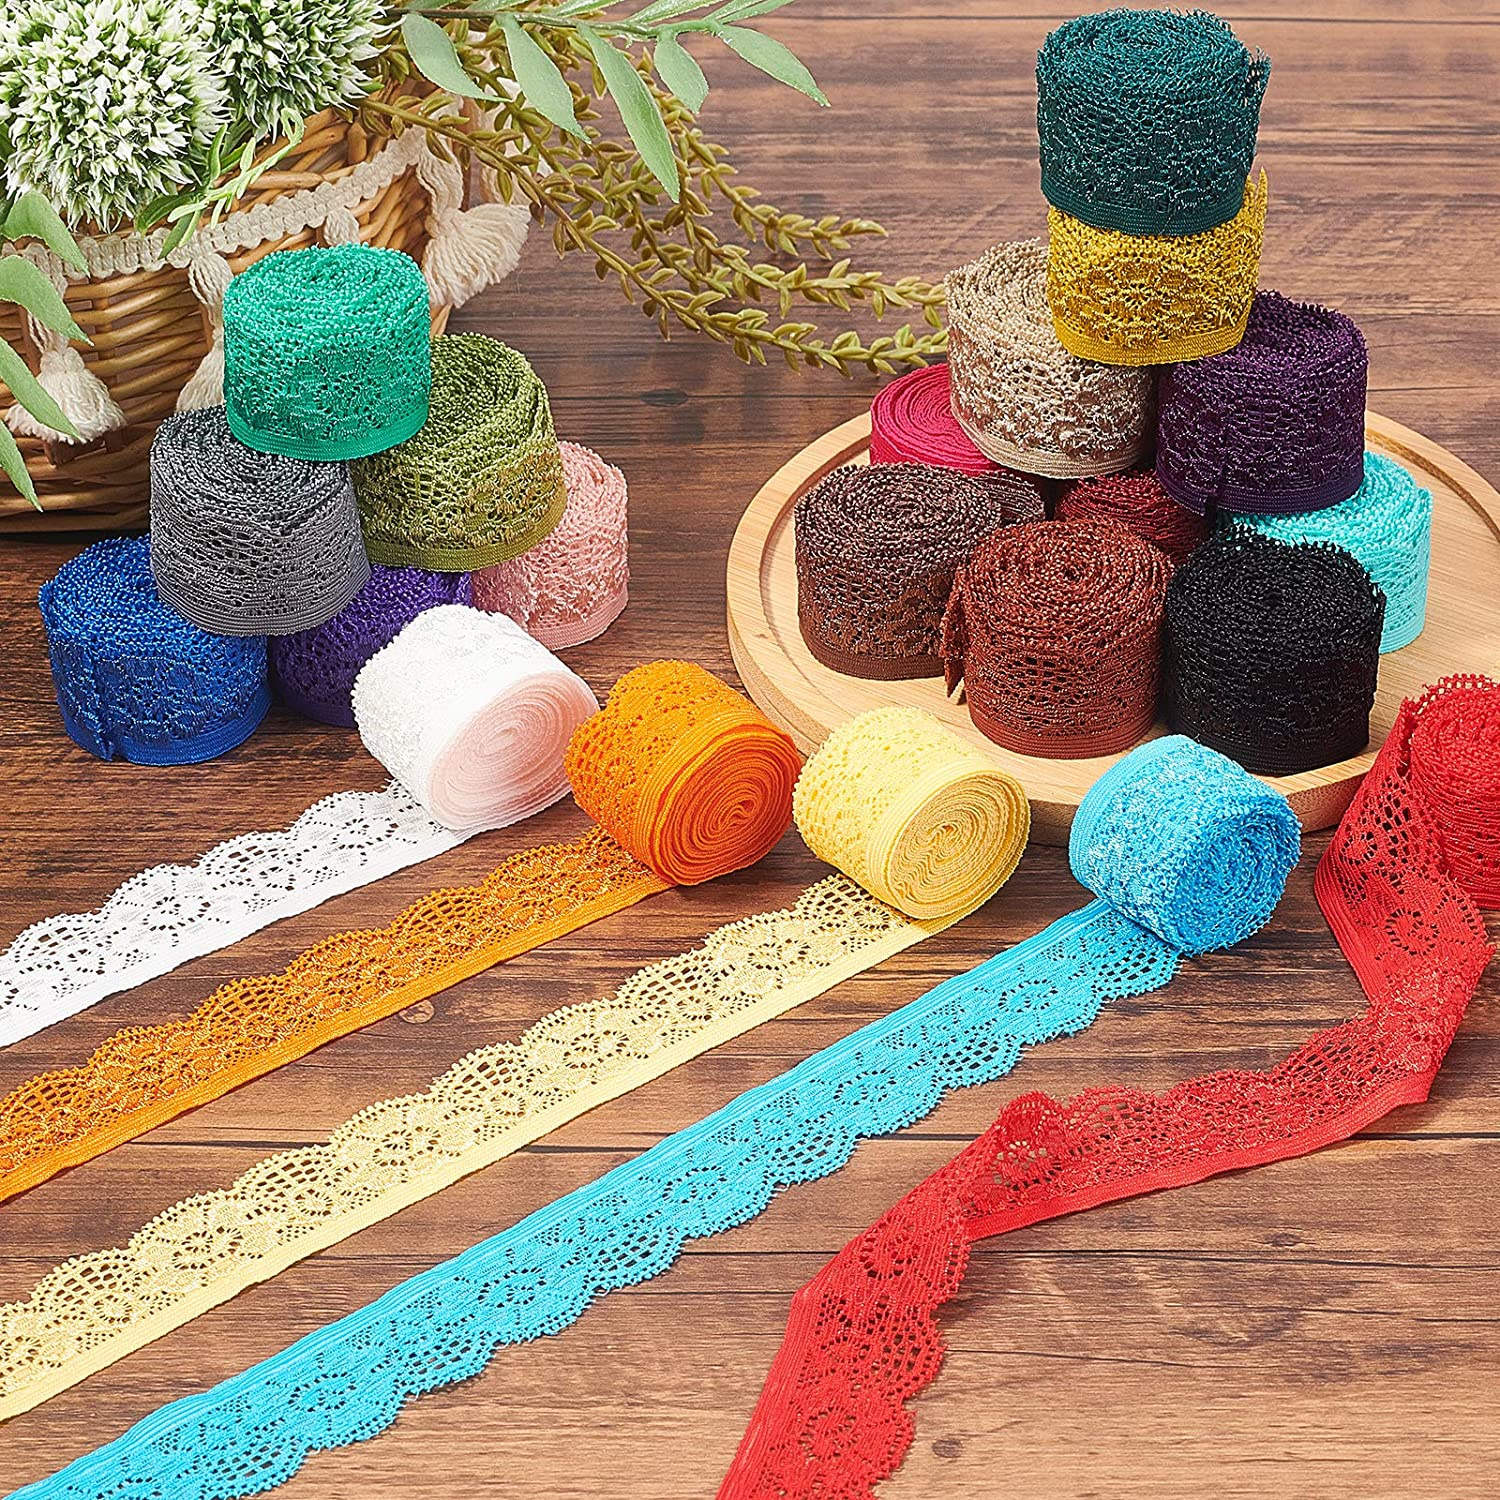 """BENECREAT 42 Yards 1"""" Wide Lace Elastic Trim Assorted Color Lace Ribbon Flower Edge Trimming for Sewing Craft Wedding Party Decor Clothes, 2 Yards/Roll"""